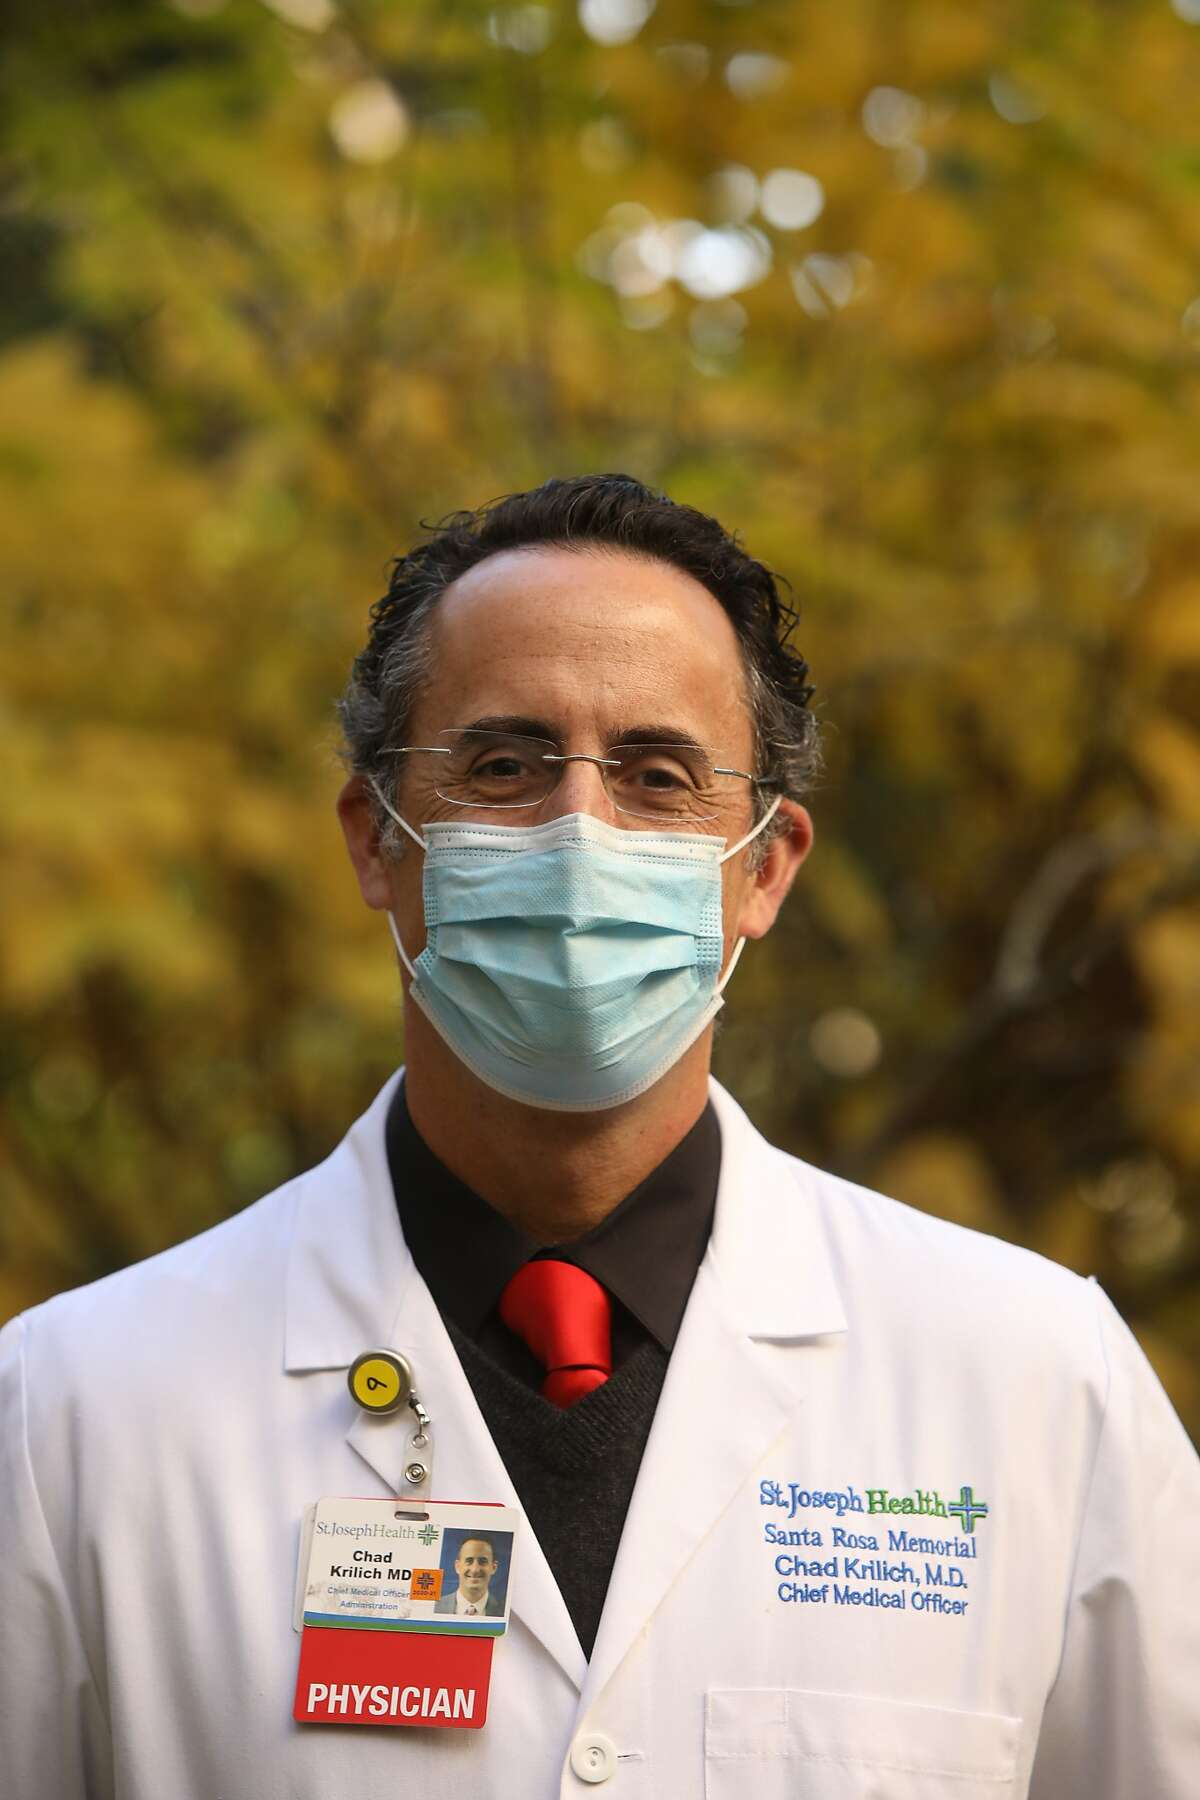 Chief Medical Officer Chad Krilich poses for a portrait in the healing garden at Santa Rosa Memorial Hospital on Wednesday, December 9, 2020, in Santa Rosa, Calif. (Yalonda M. James / The Chronicle)